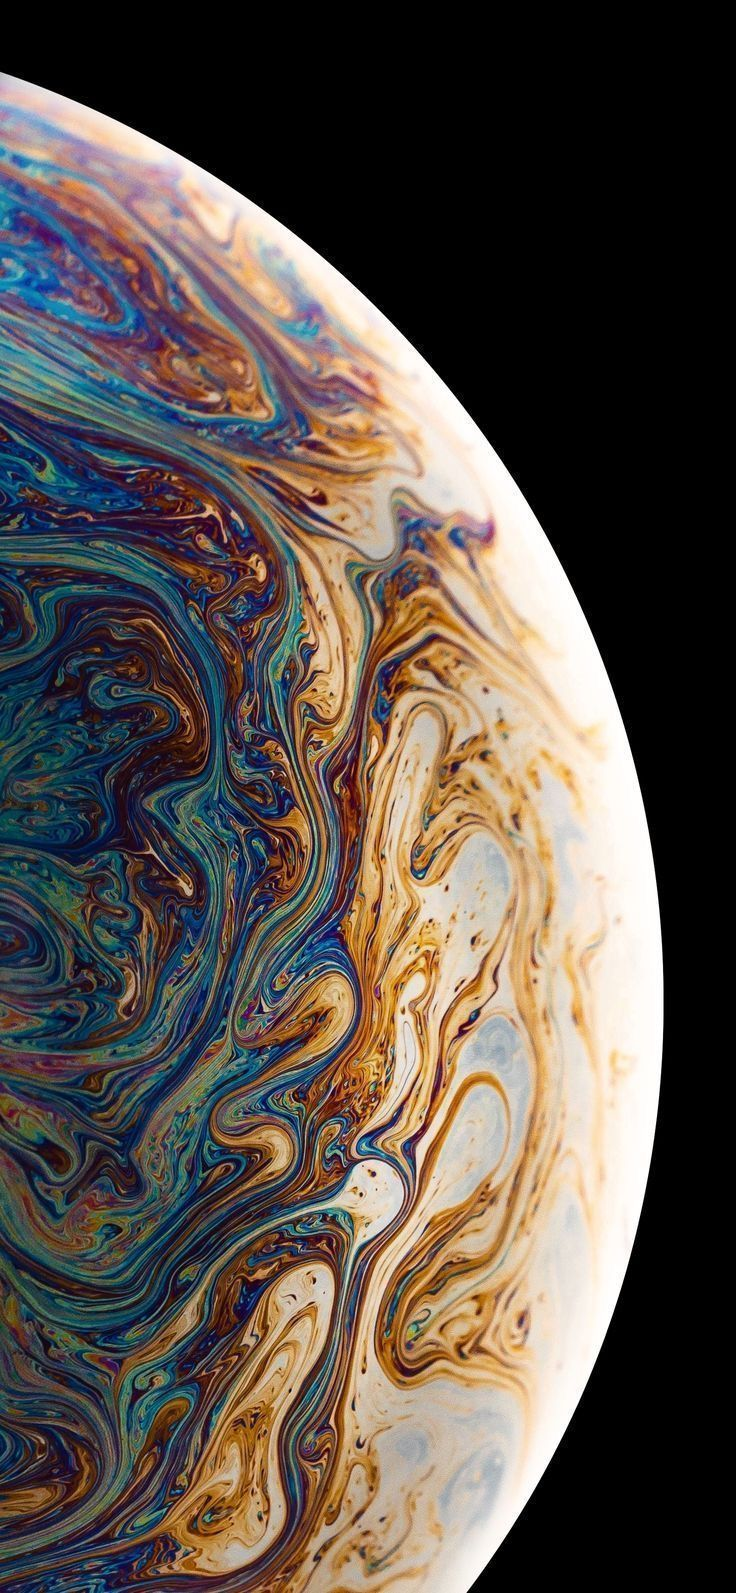 #ios13wallpaper in 2020 | Live wallpaper iphone, Galaxy ...